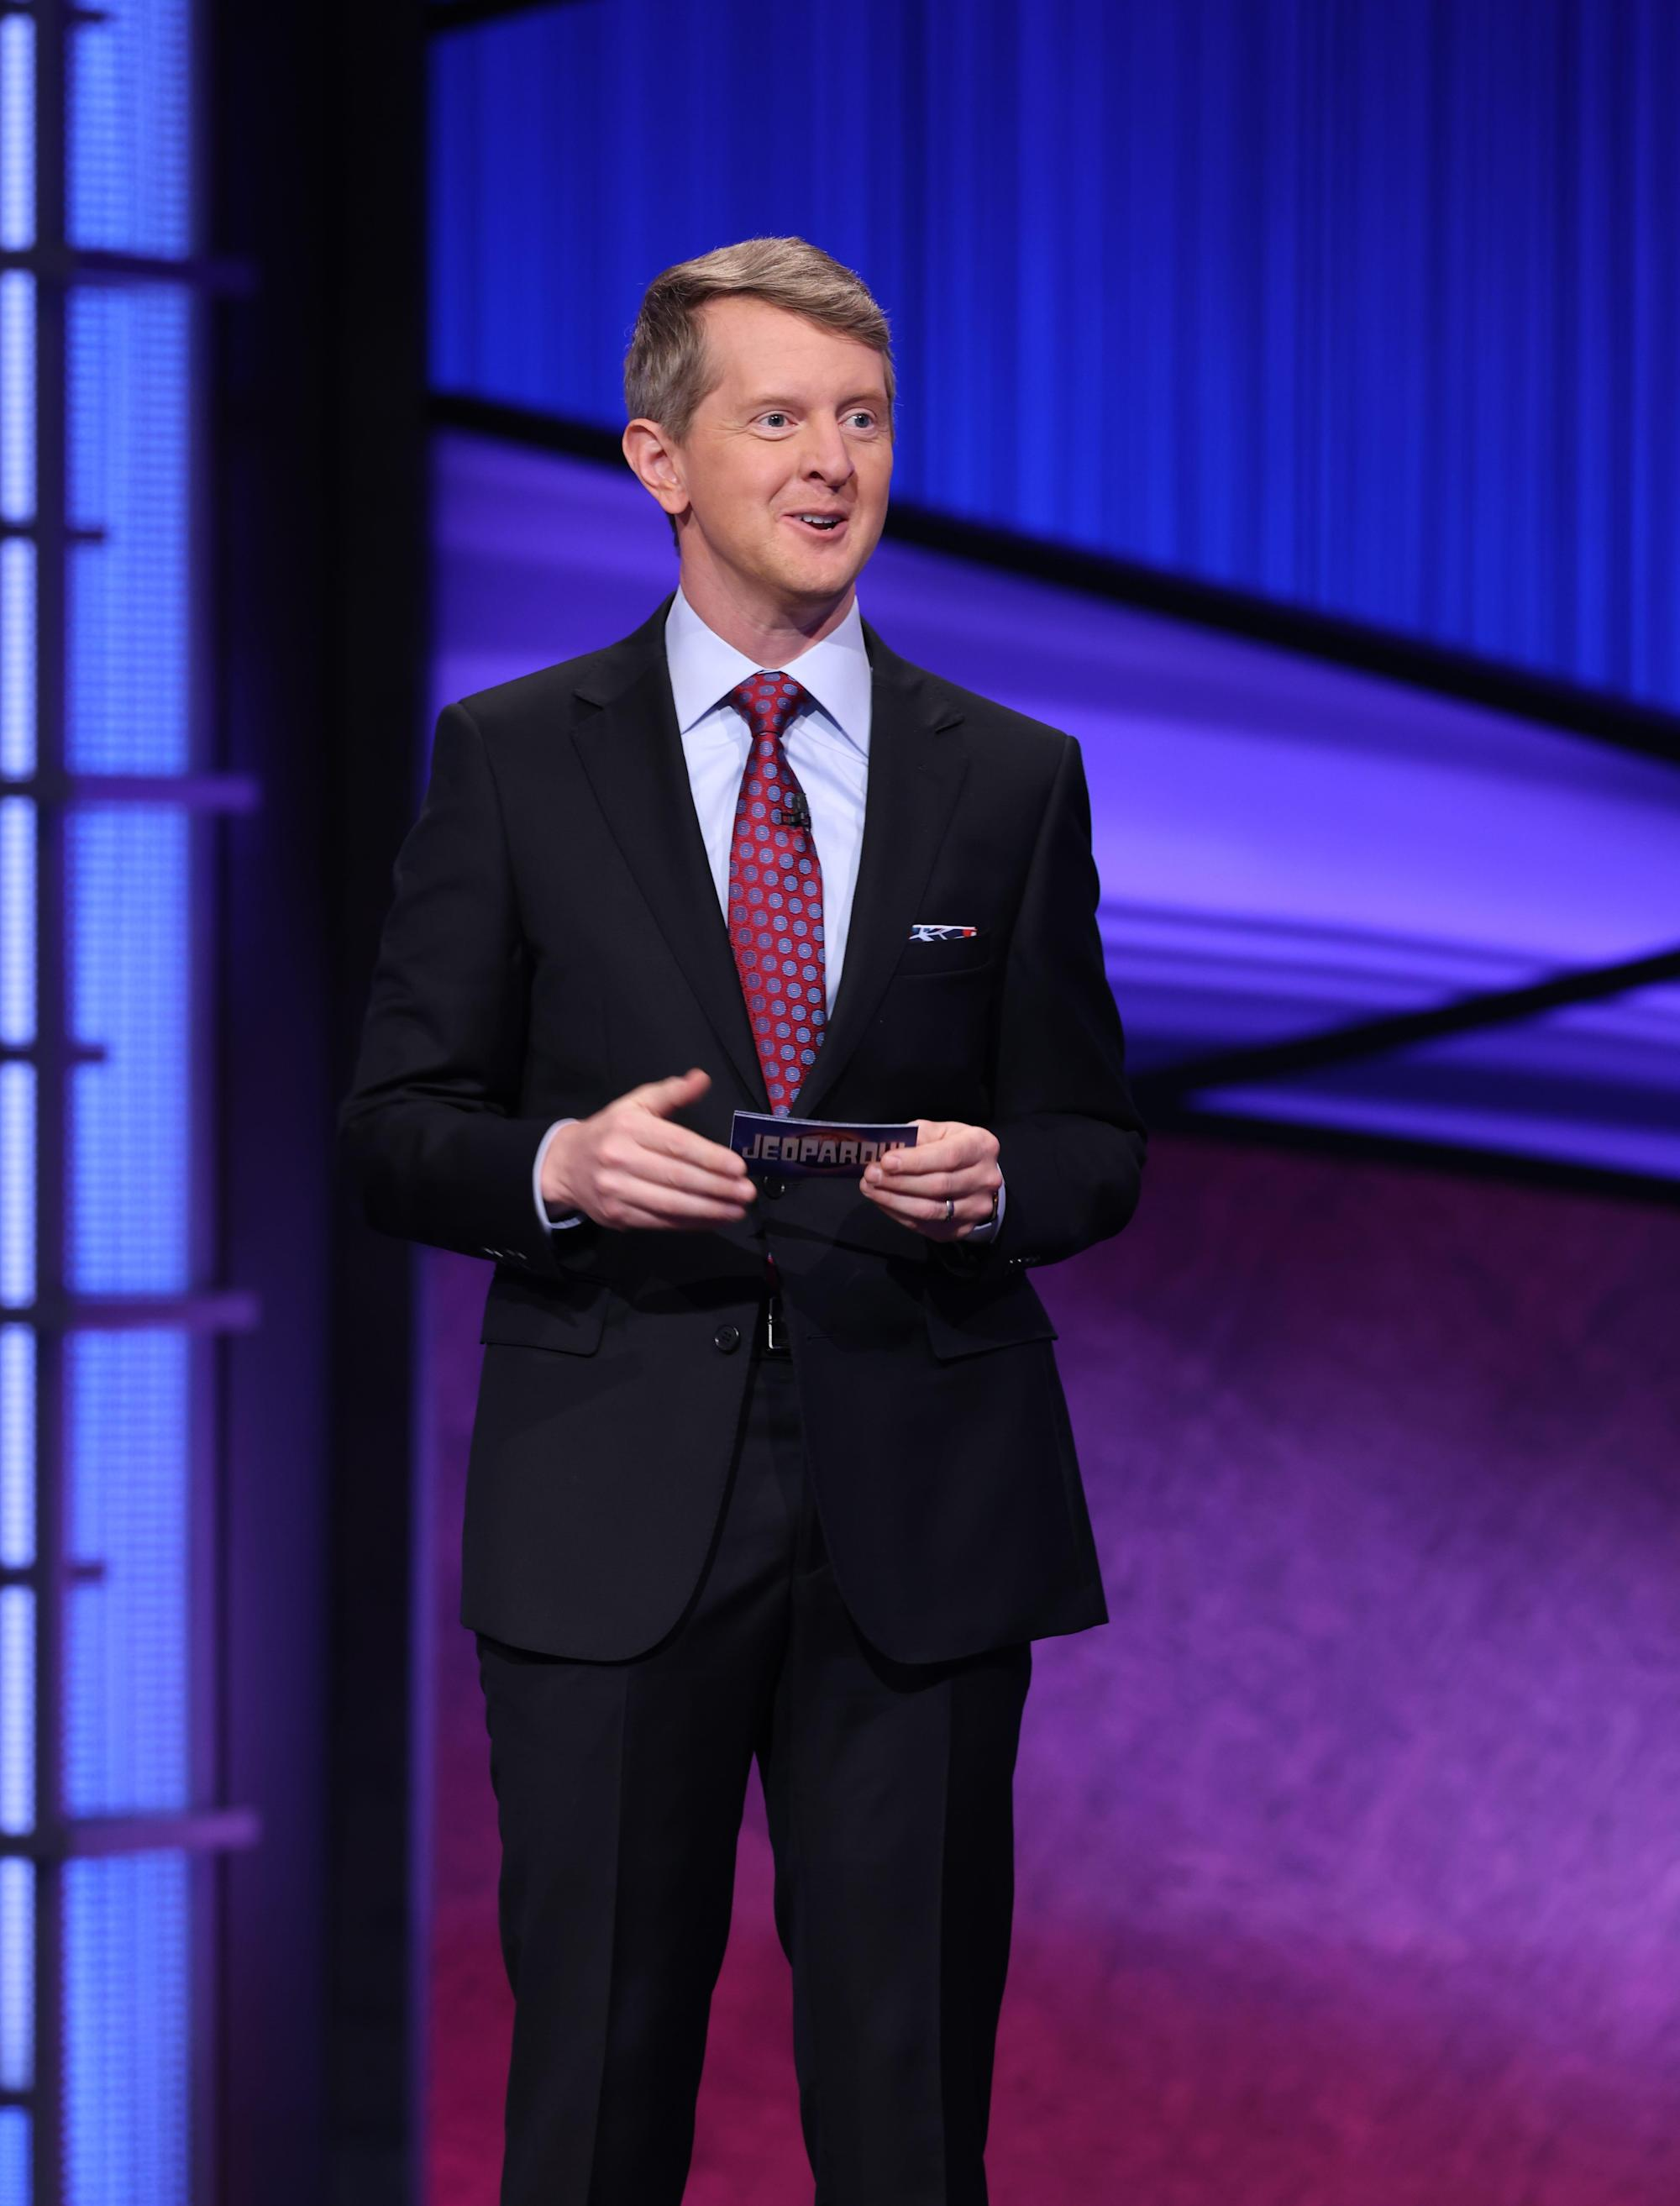 The first 'Jeopardy!' without Alex Trebek: How did Ken Jennings do as host?